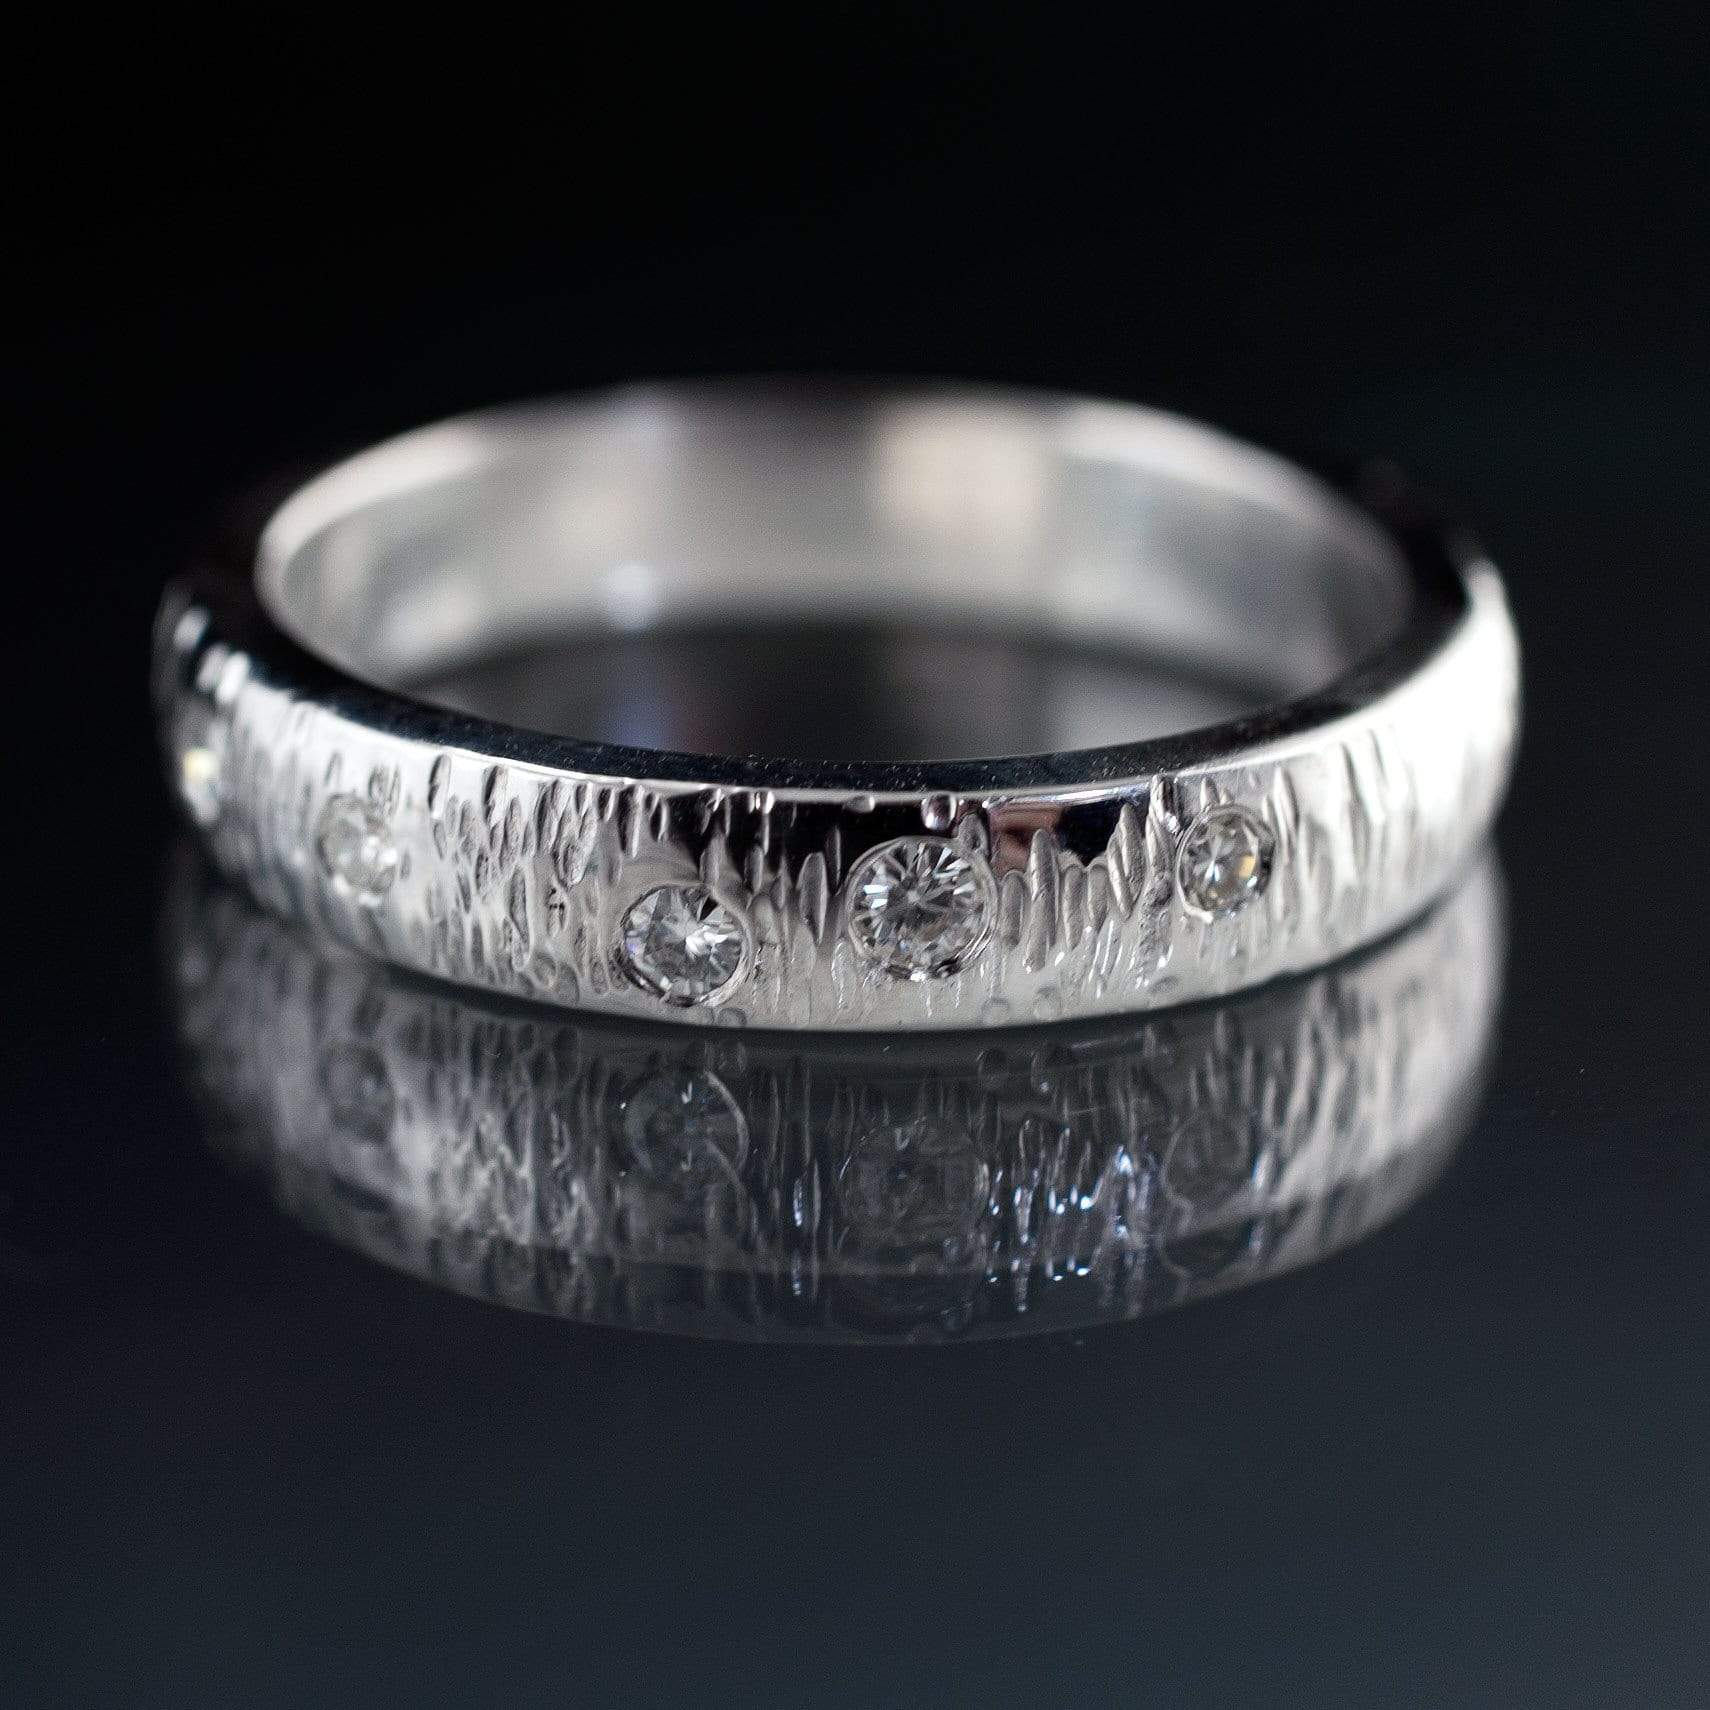 Moissanite Textured Wedding Band with Hammered Texture and Flush Set Moissanites - by Nodeform